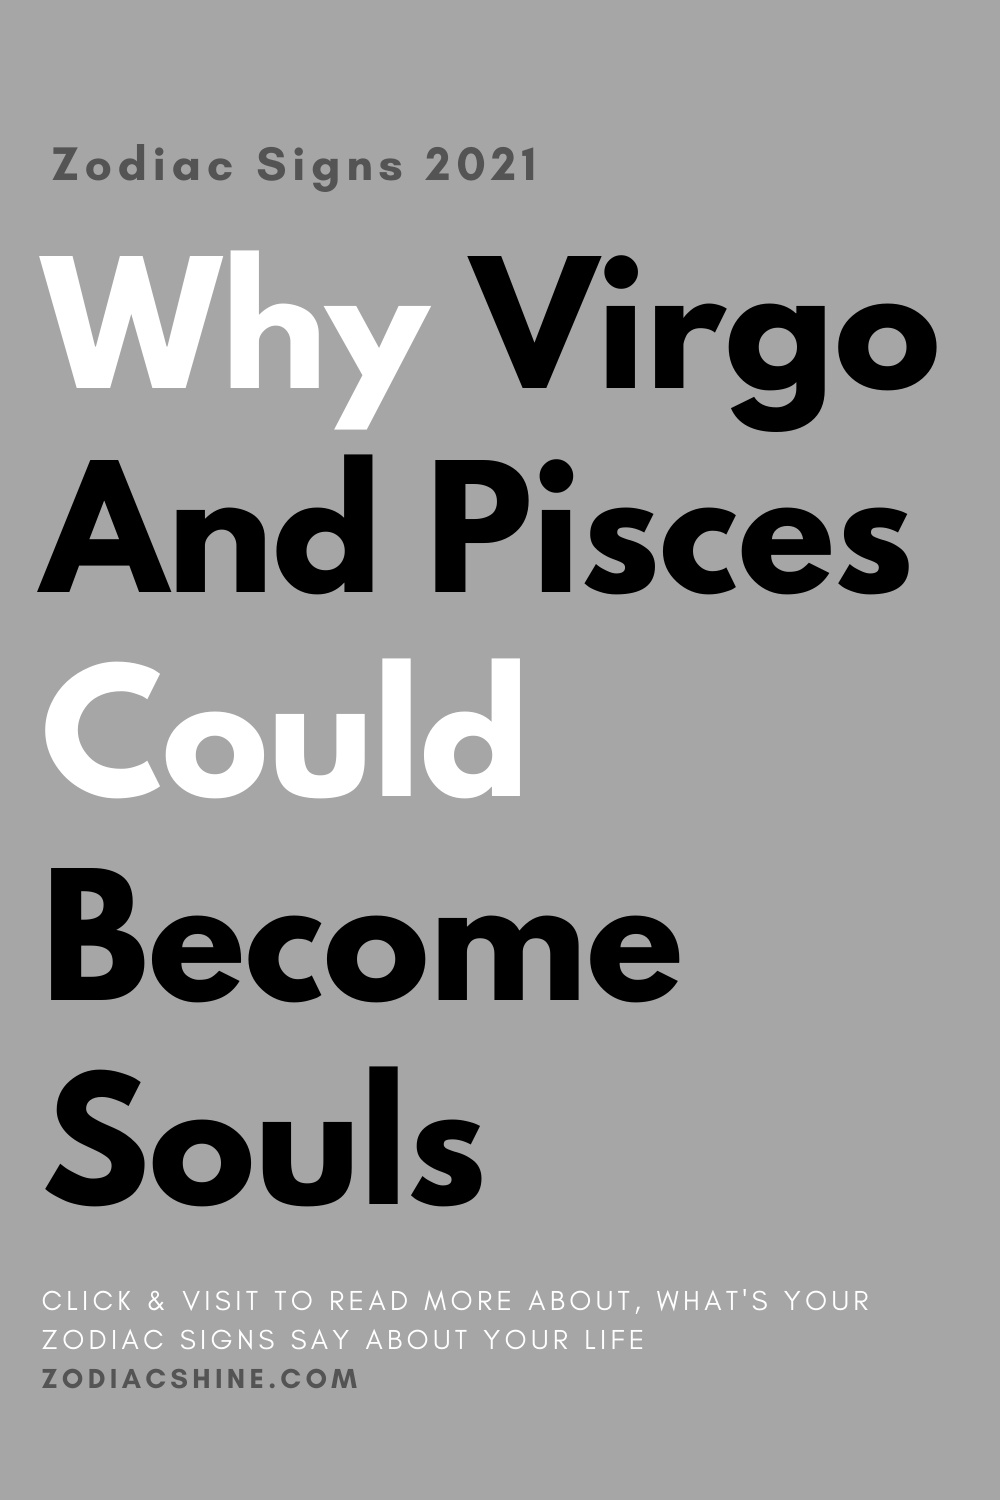 Why Virgo And Pisces Could Become Souls